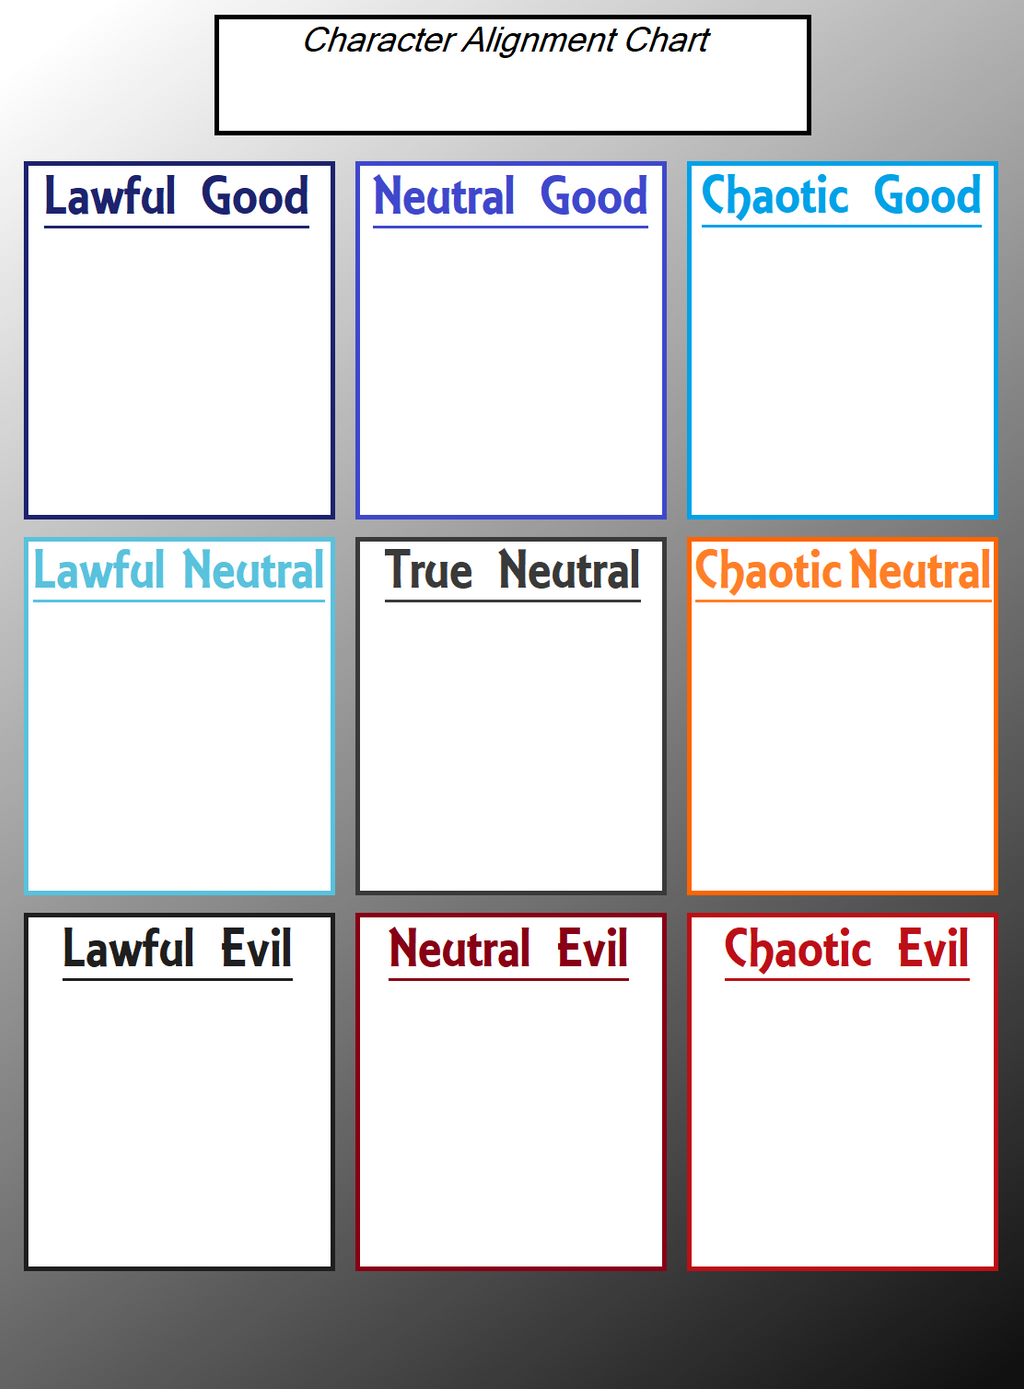 free pert chart template examples of flow diagrams wire diagram character alignment chart template by joyofcrimeart - Free Pert Chart Software